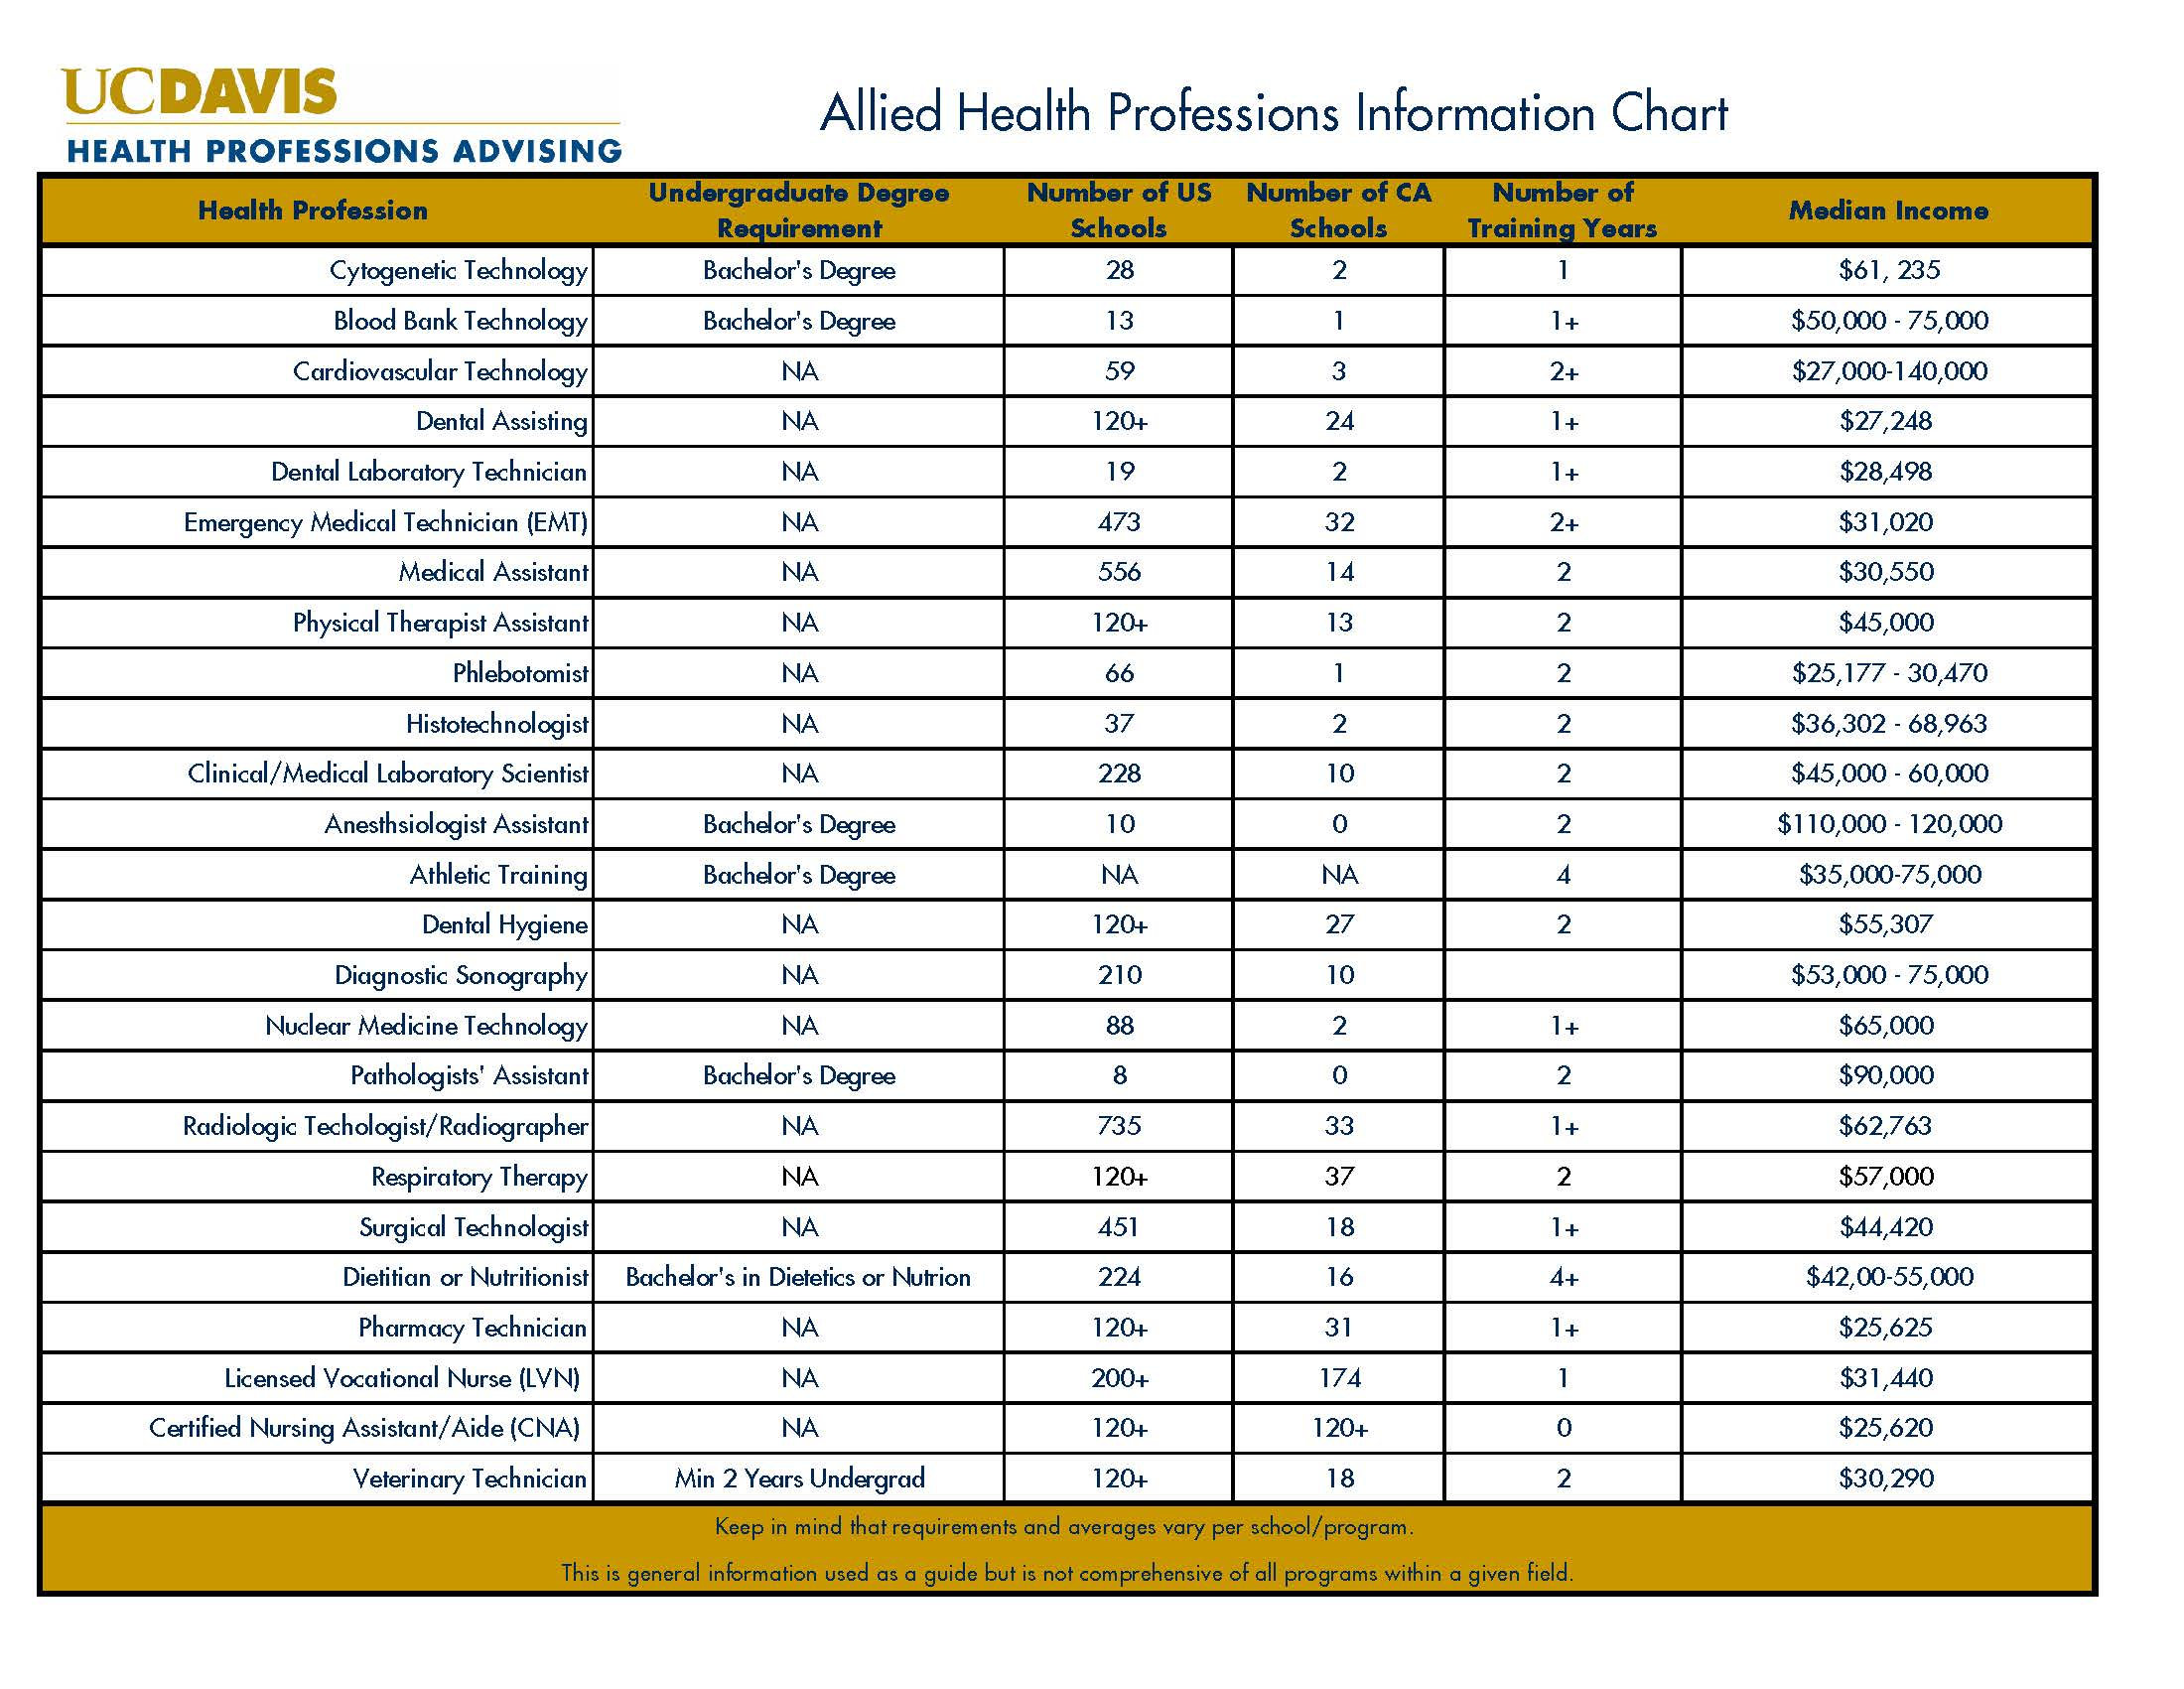 Allied Health Information Chart